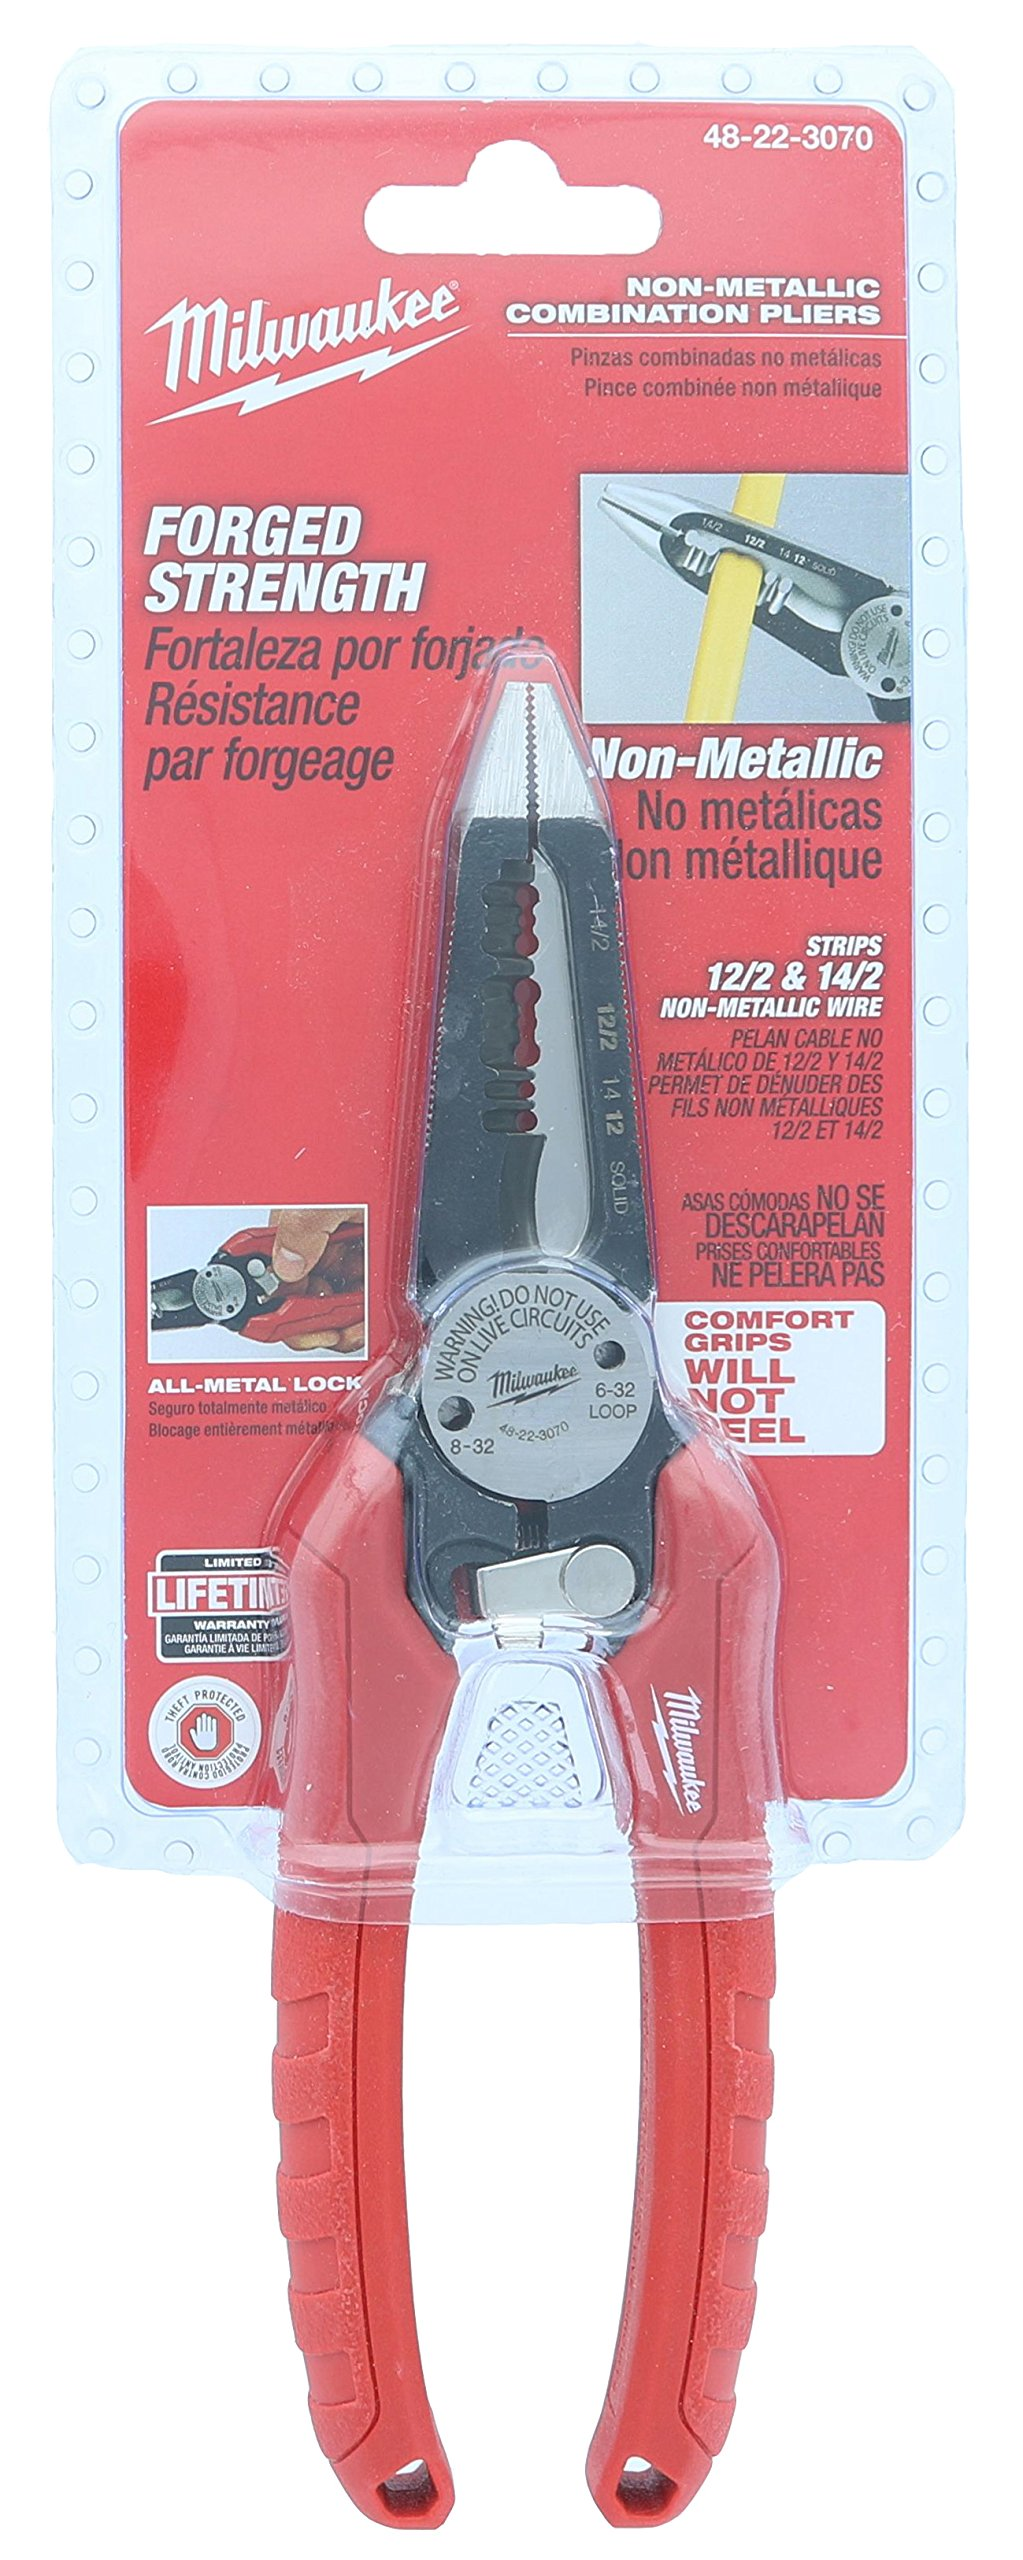 Milwaukee 48-22-3070 6 in 1 Combination Needle Nose Electrician's Pliers for Non-Metallic Wire w/ Onboard Bolt Cutting and Pipe Reaming Design